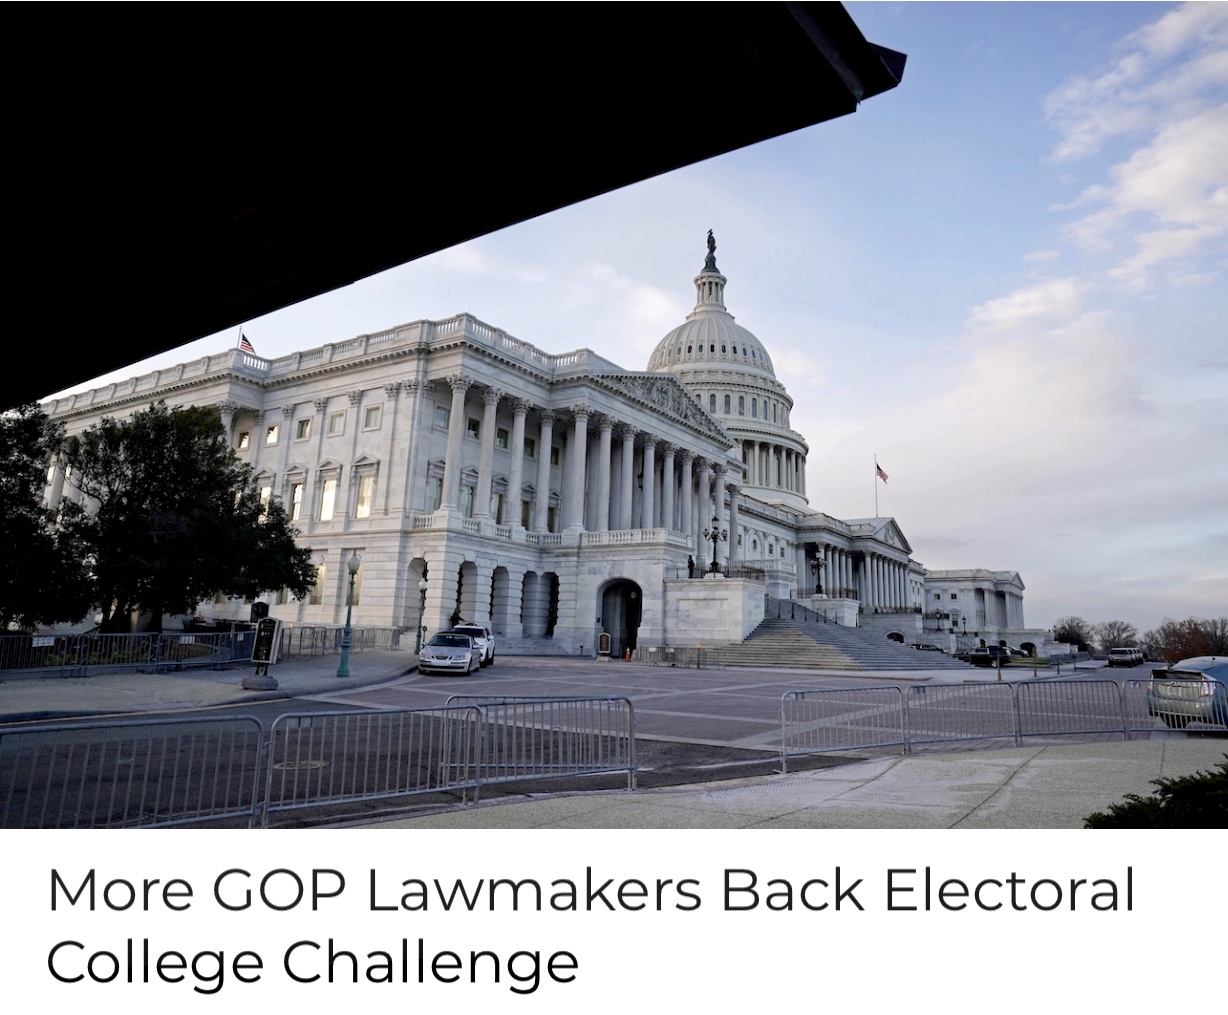 Breaking News More GOP Lawmakers Back Electoral College Challenge